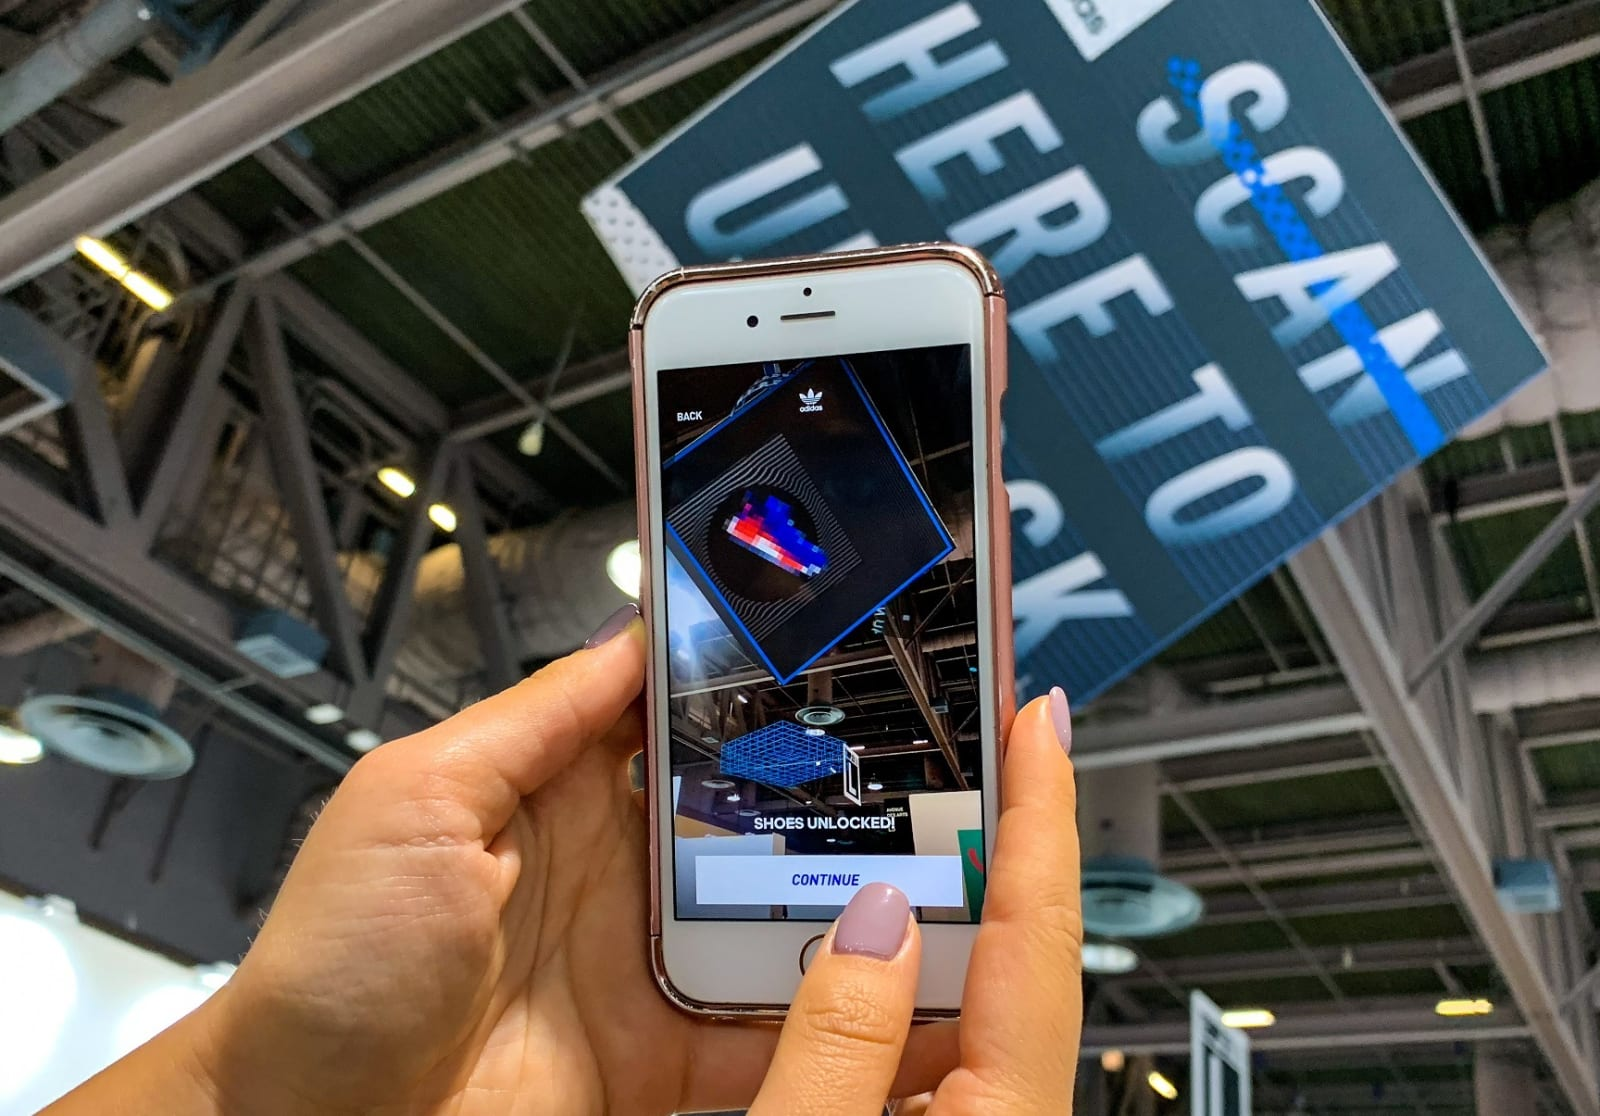 6b093d24fa73f Adidas is using augmented reality to sell limited-edition sneakers